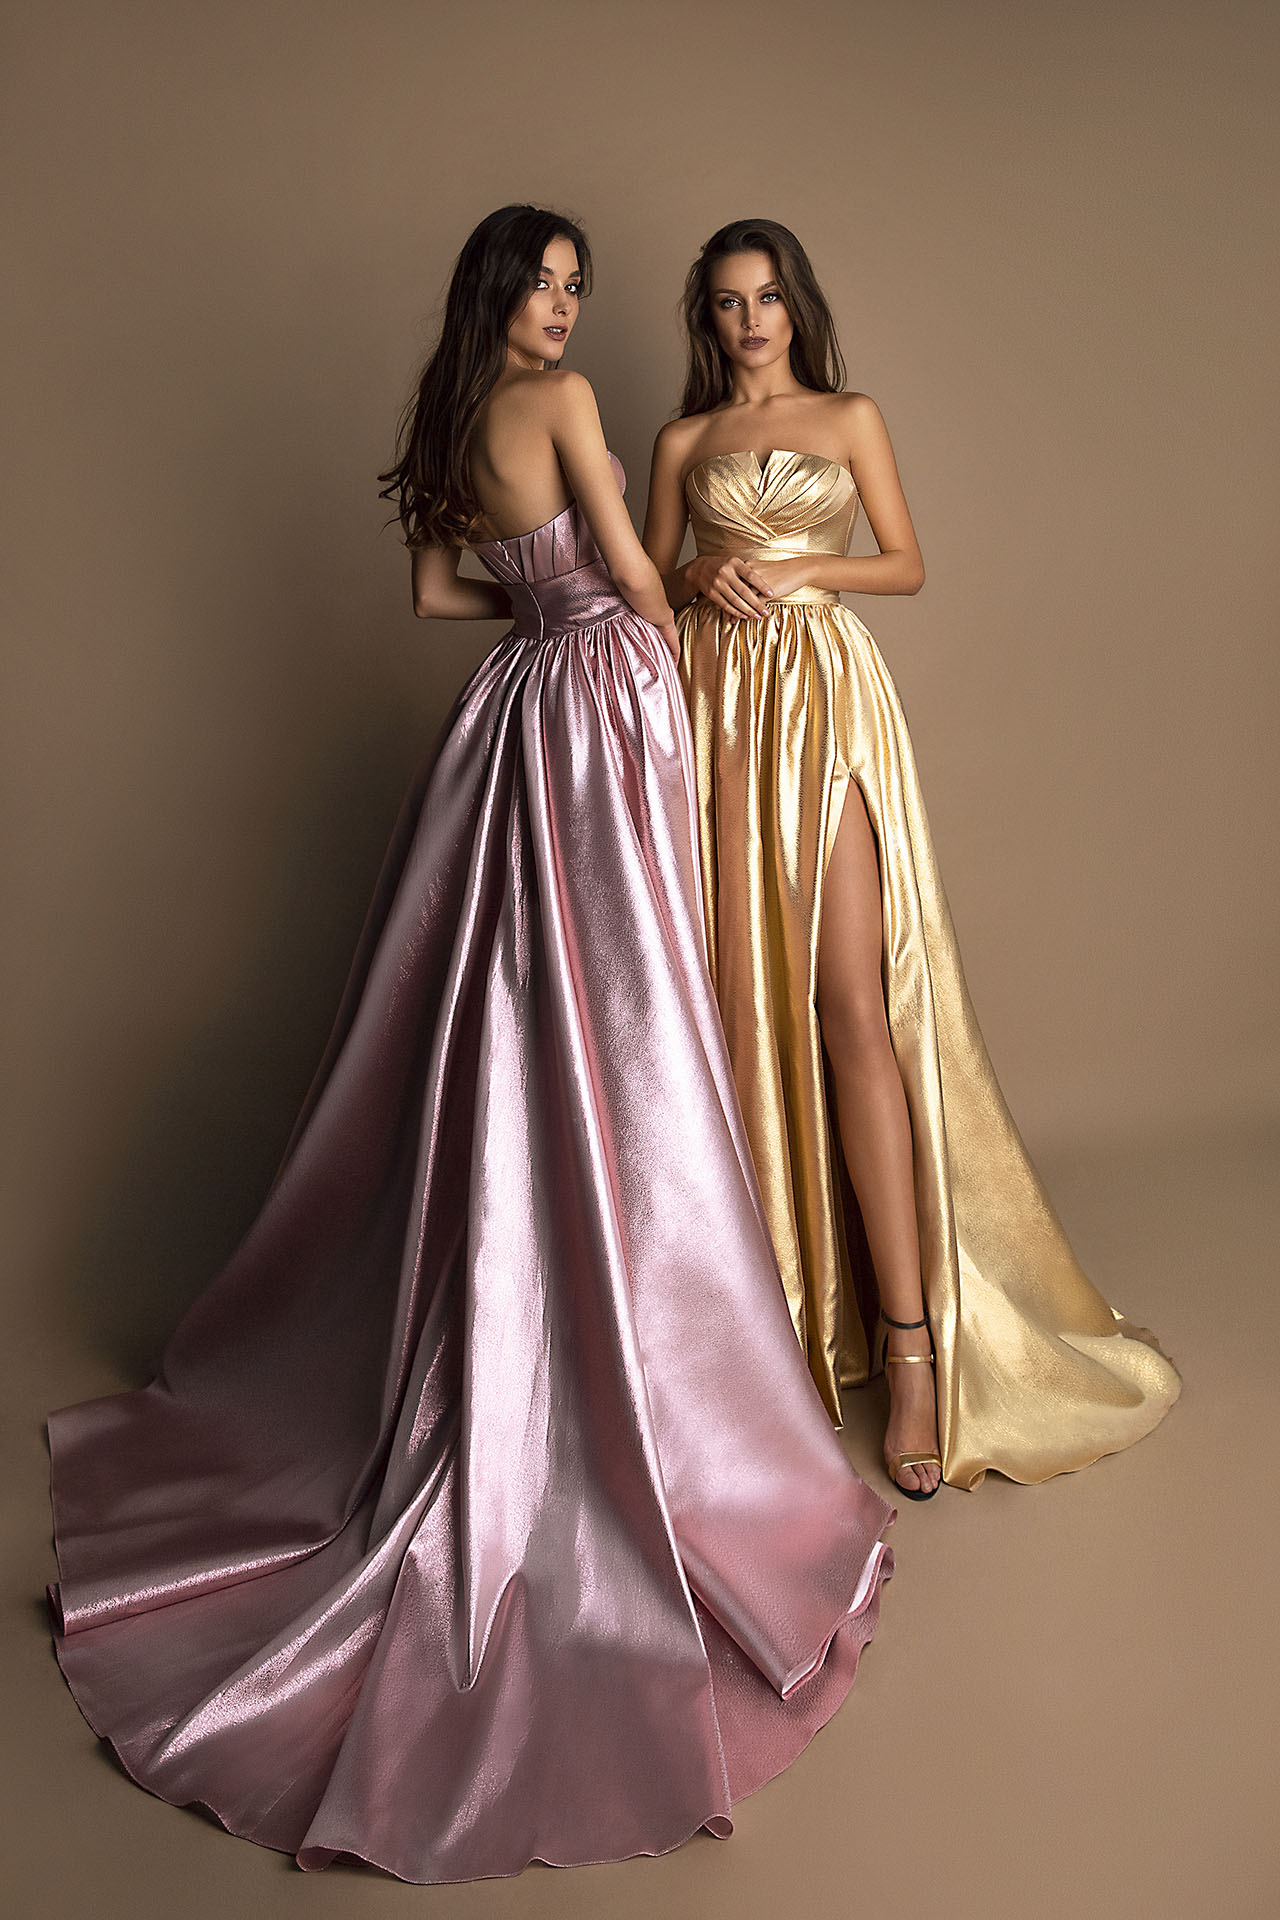 Evening Dresses 1610 Silhouette  A Line  Color  Pink  Gold  Neckline  Straight  Sleeves  Sleeveless  Train  No train - foto 2